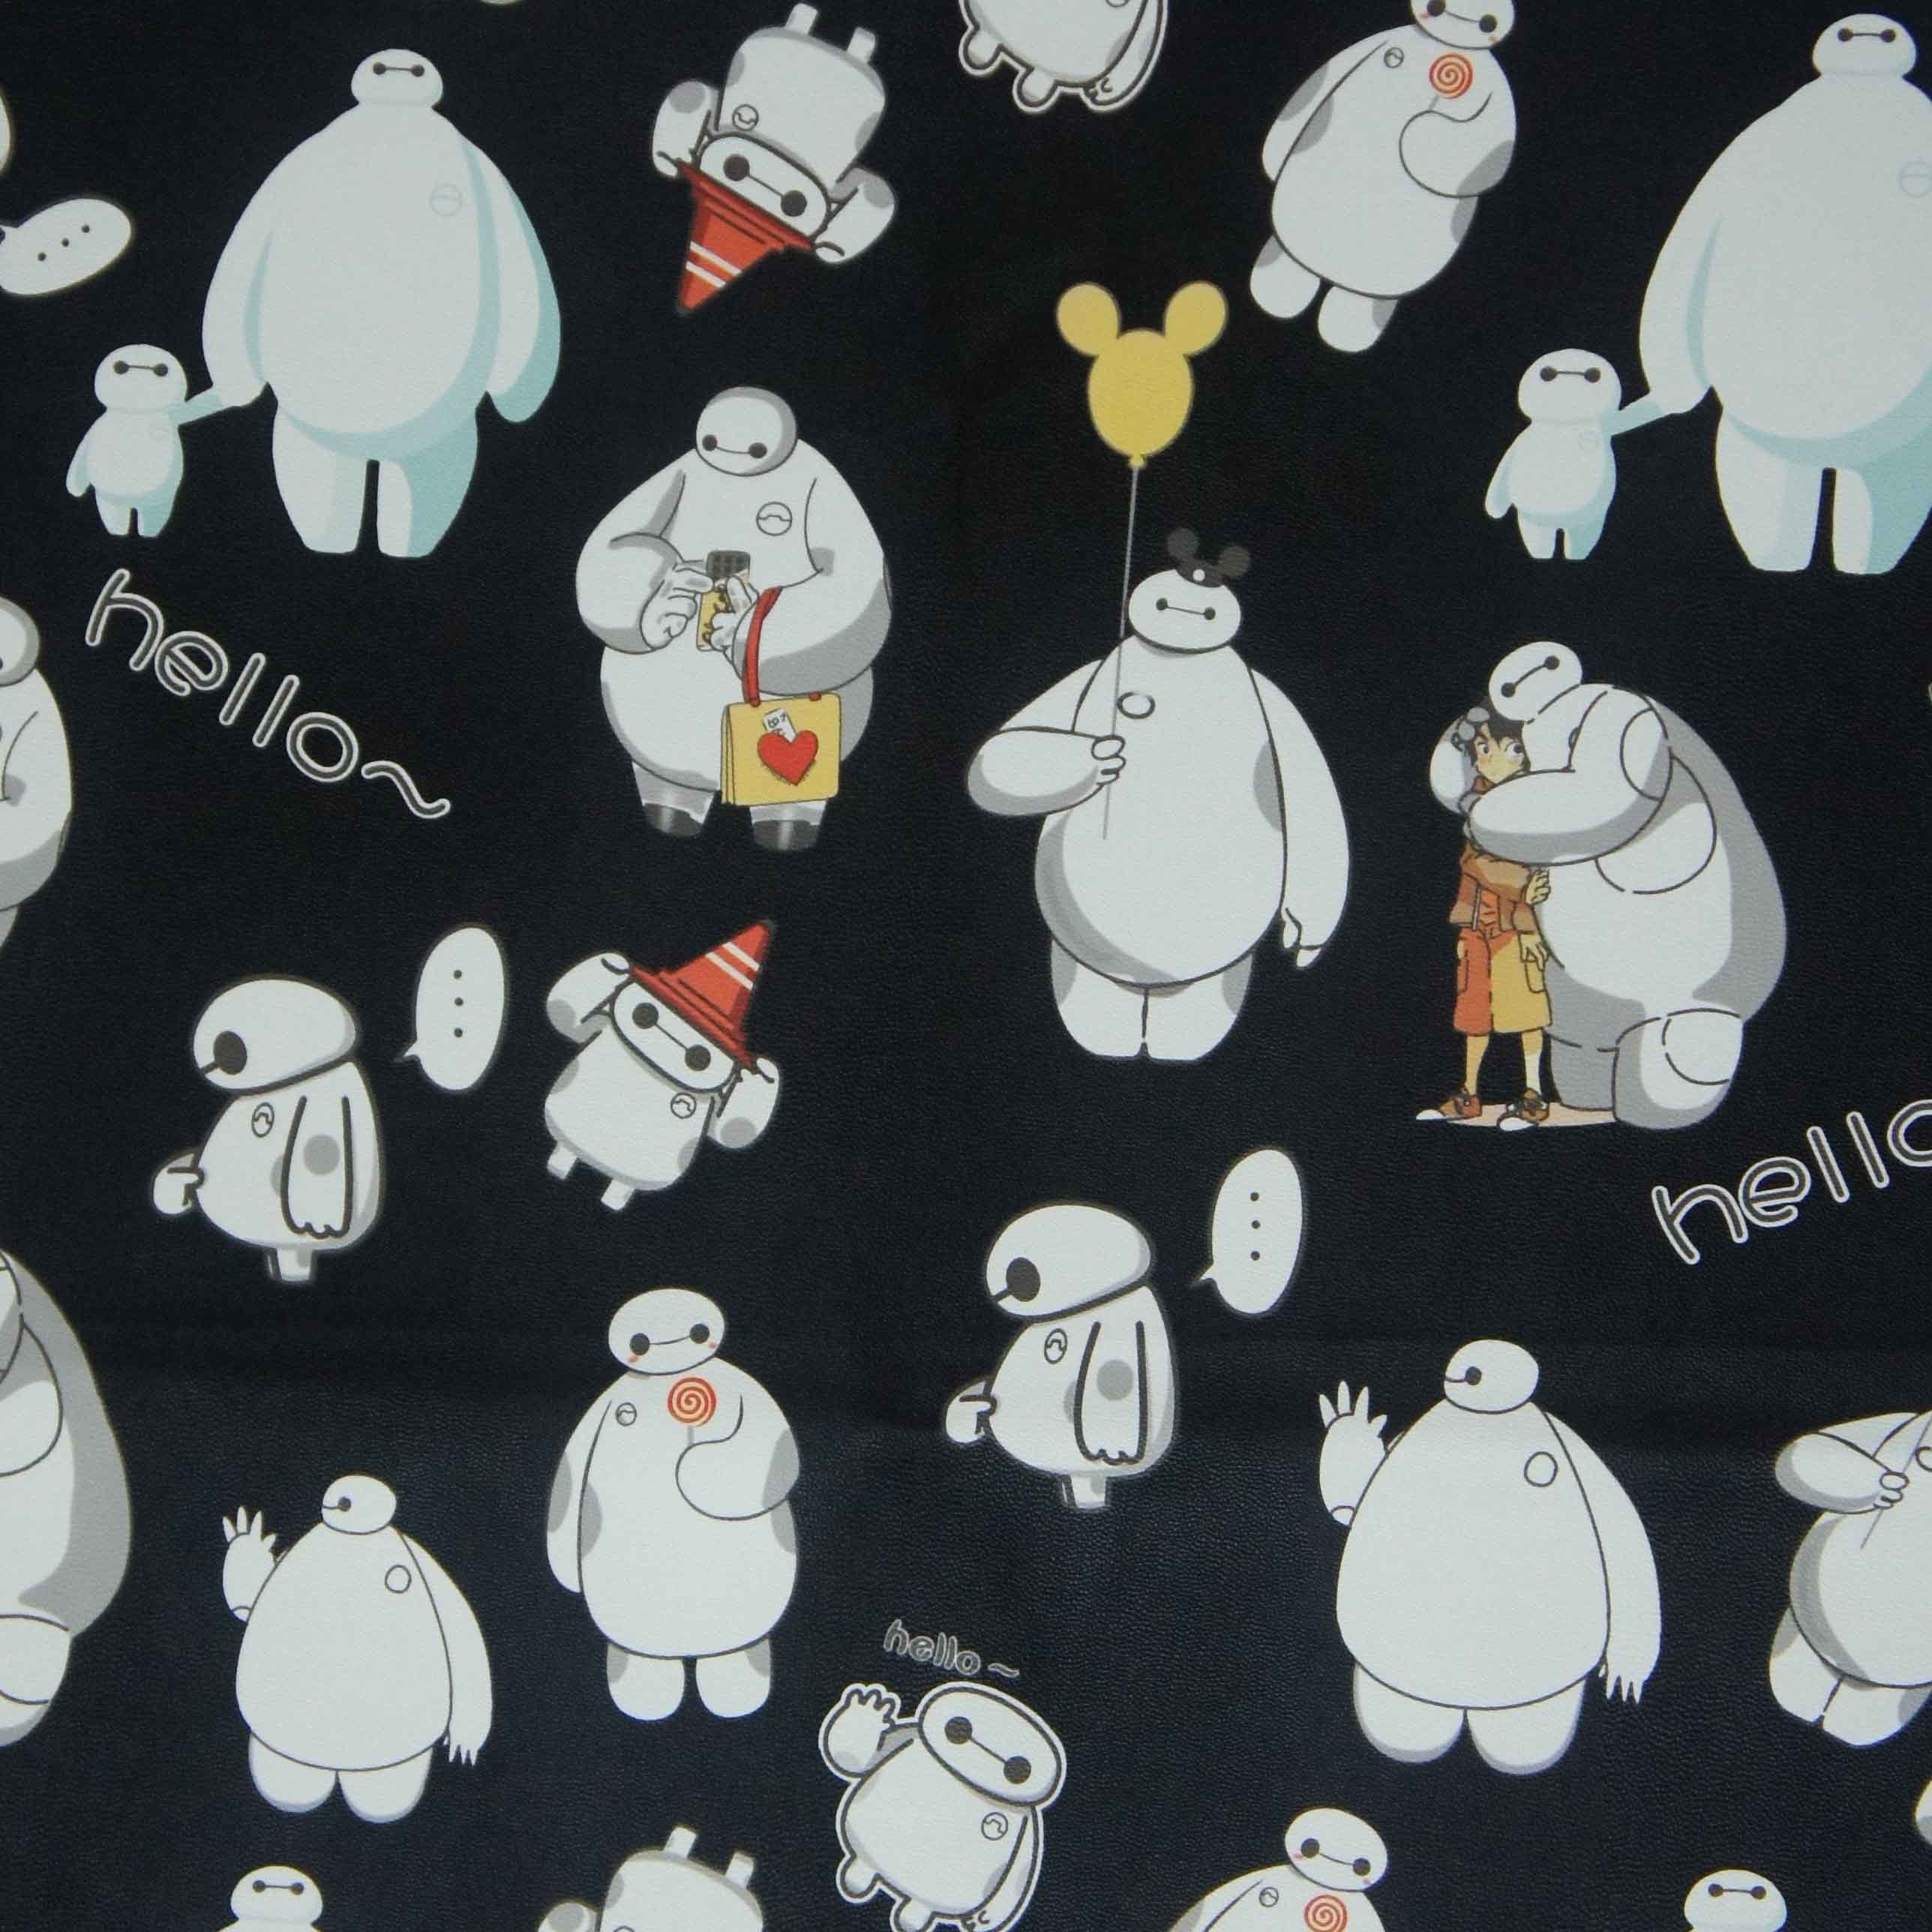 Oxford 600d High Density PVC/PU Baymax Printing Polyester Fabric (XLT-BM)